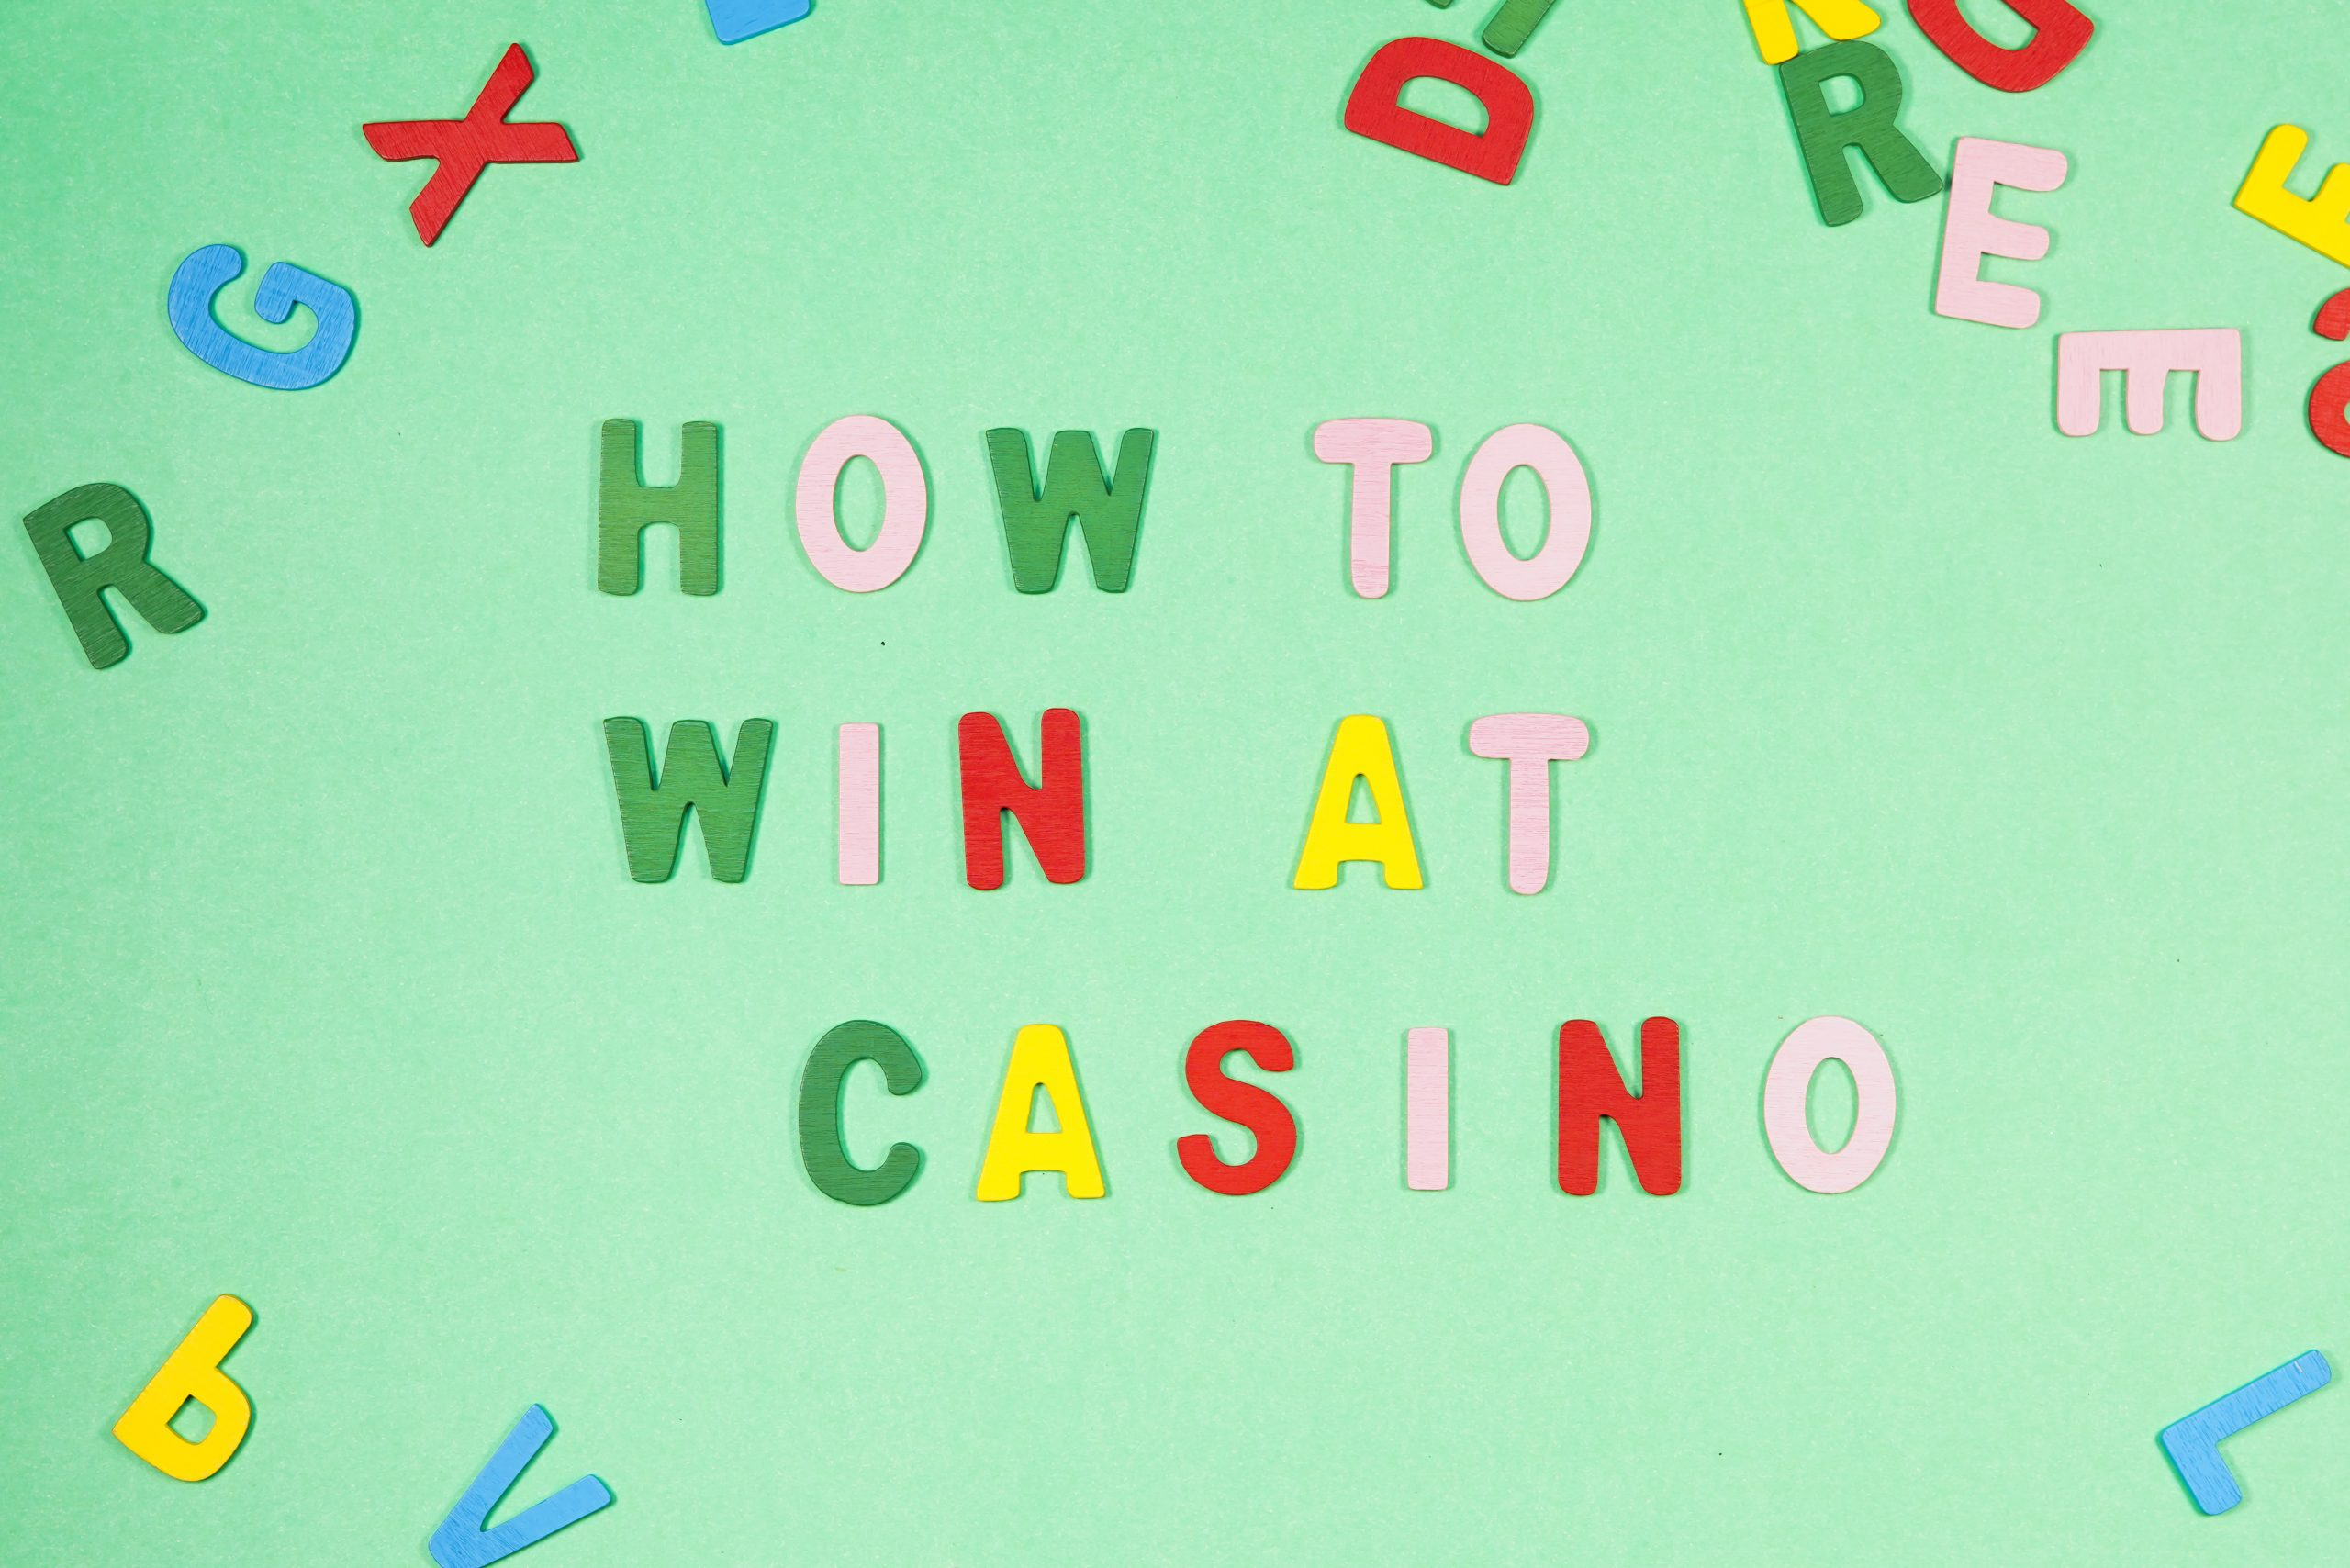 How to win at casino